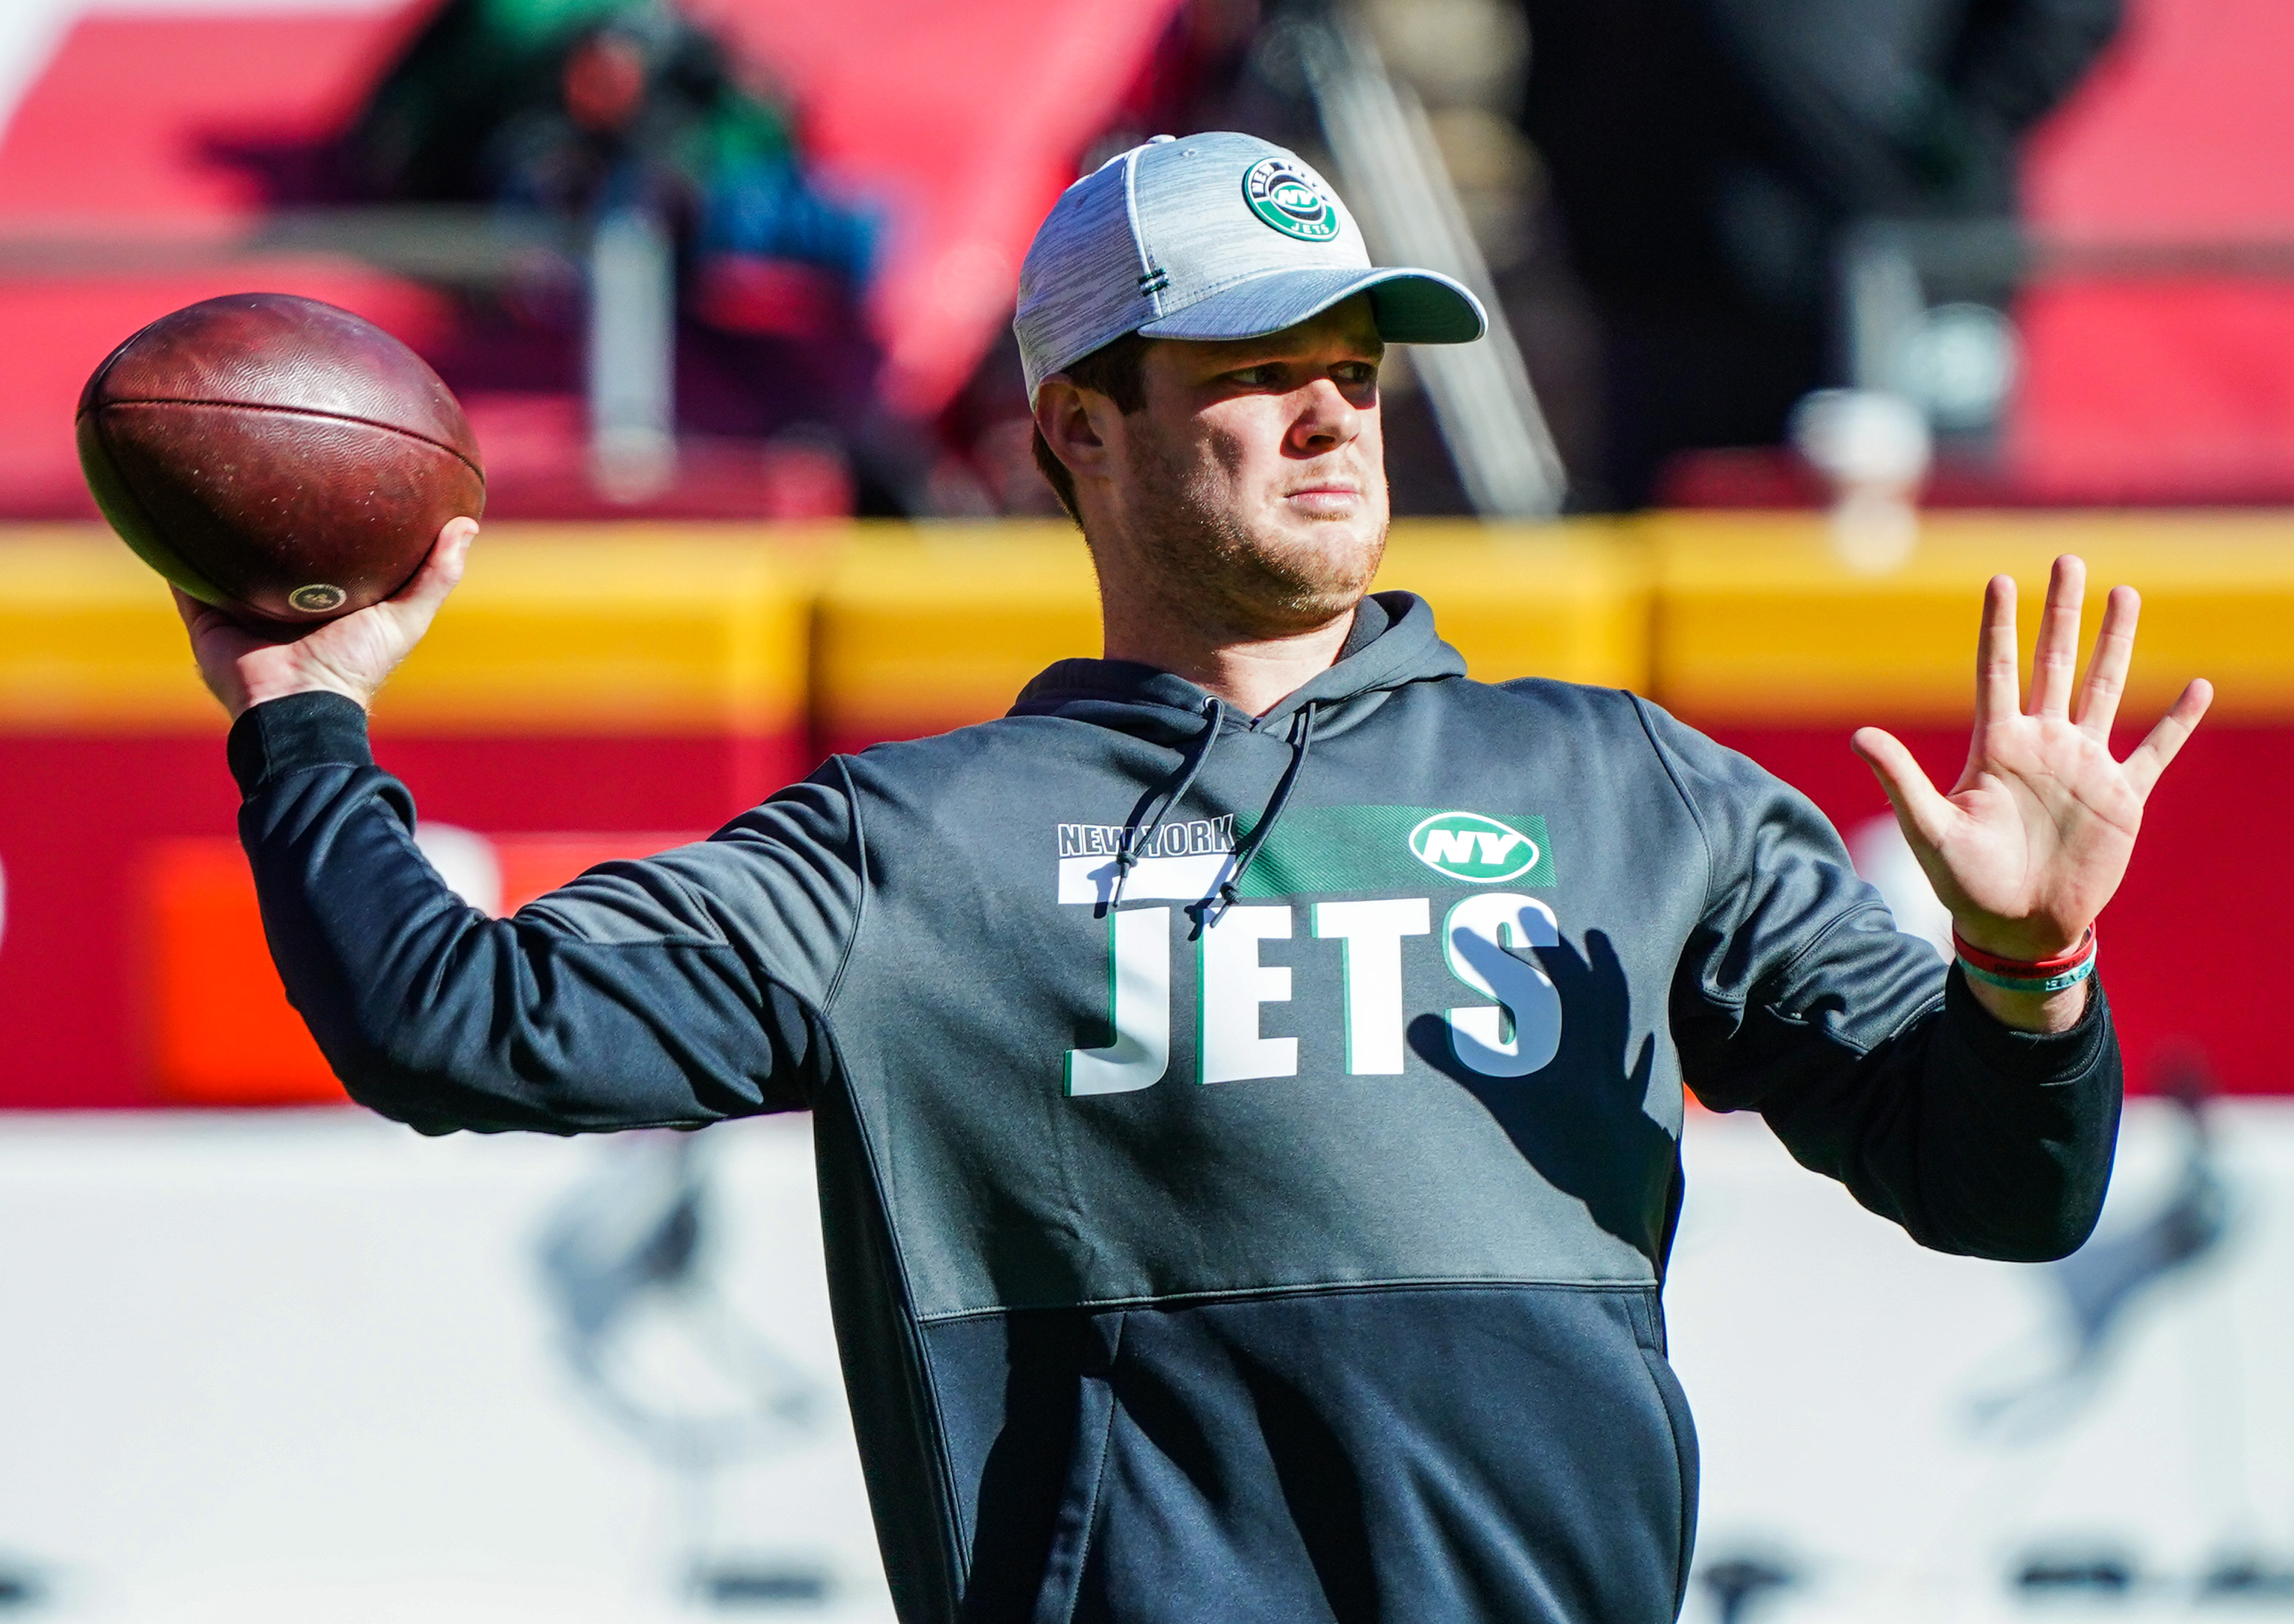 Jets injury report: Sam Darnold returns to practice on limited basis